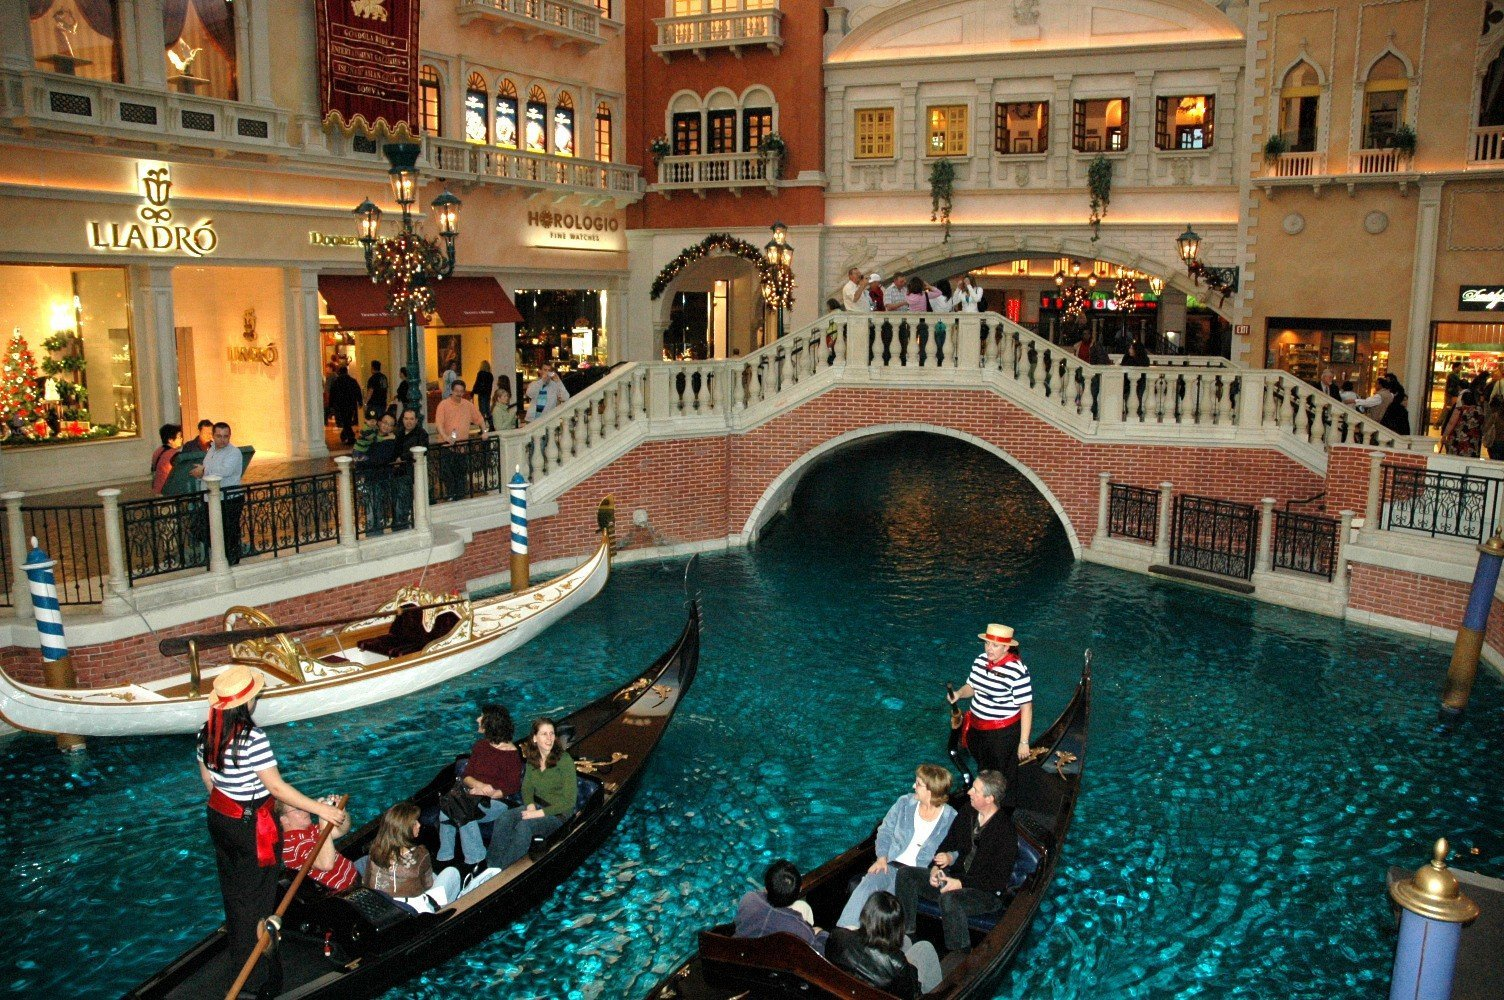 The Venetian comes close, but fails to capture the essence of Venice